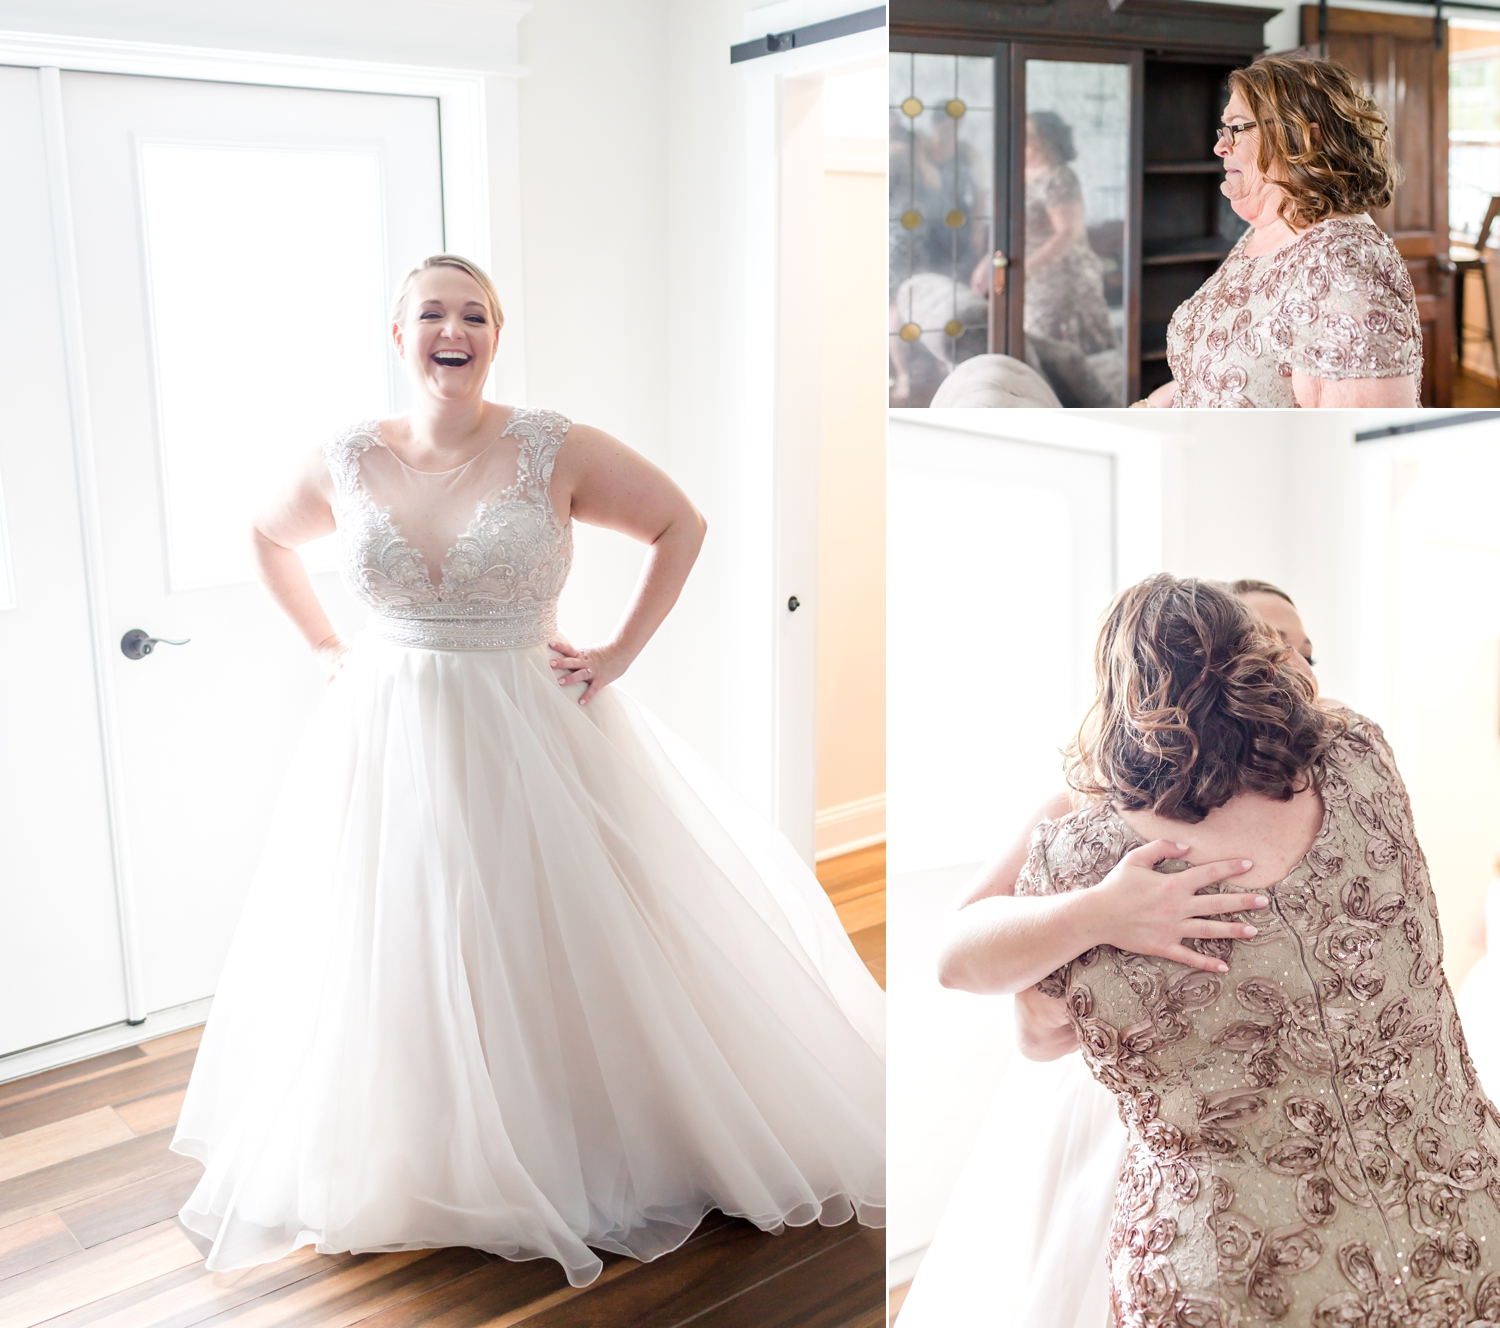 Emily's mom was overwhelmed when she saw her in her dress. It was priceless!